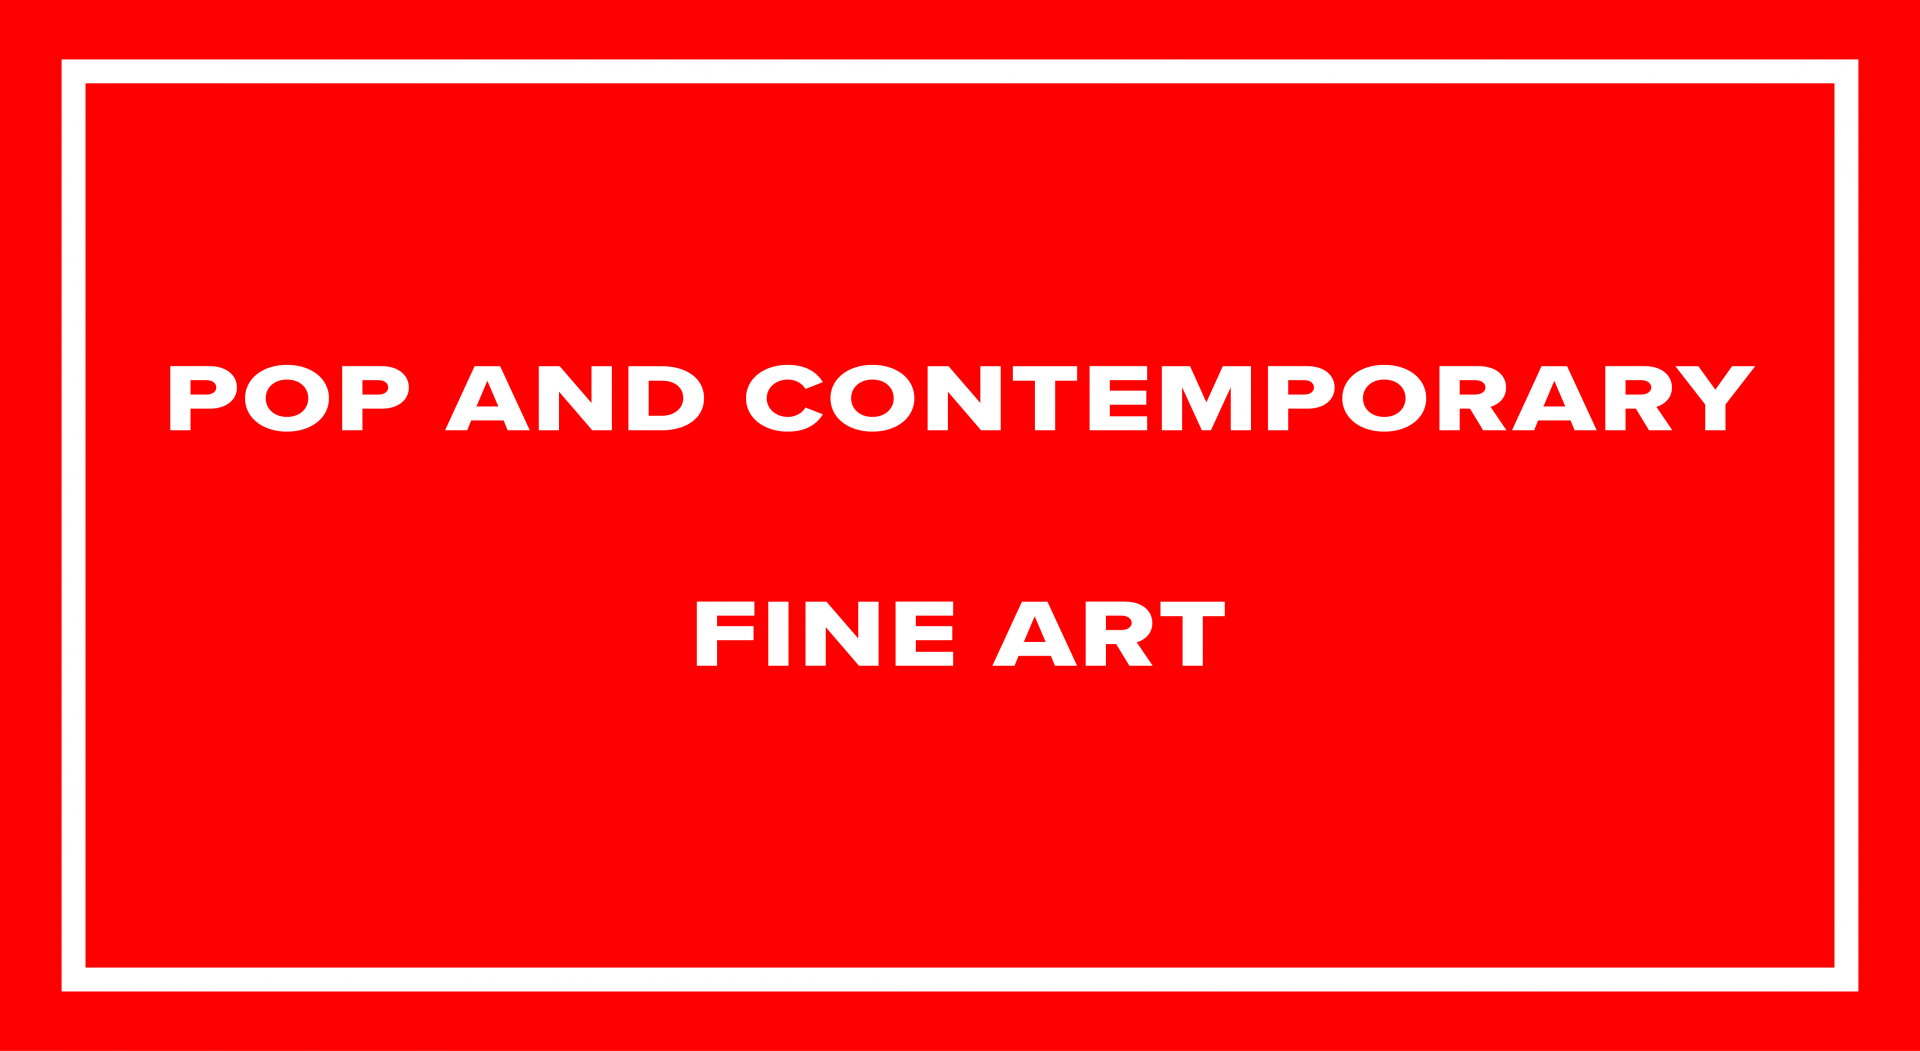 Pop and Contemporary Fine Art